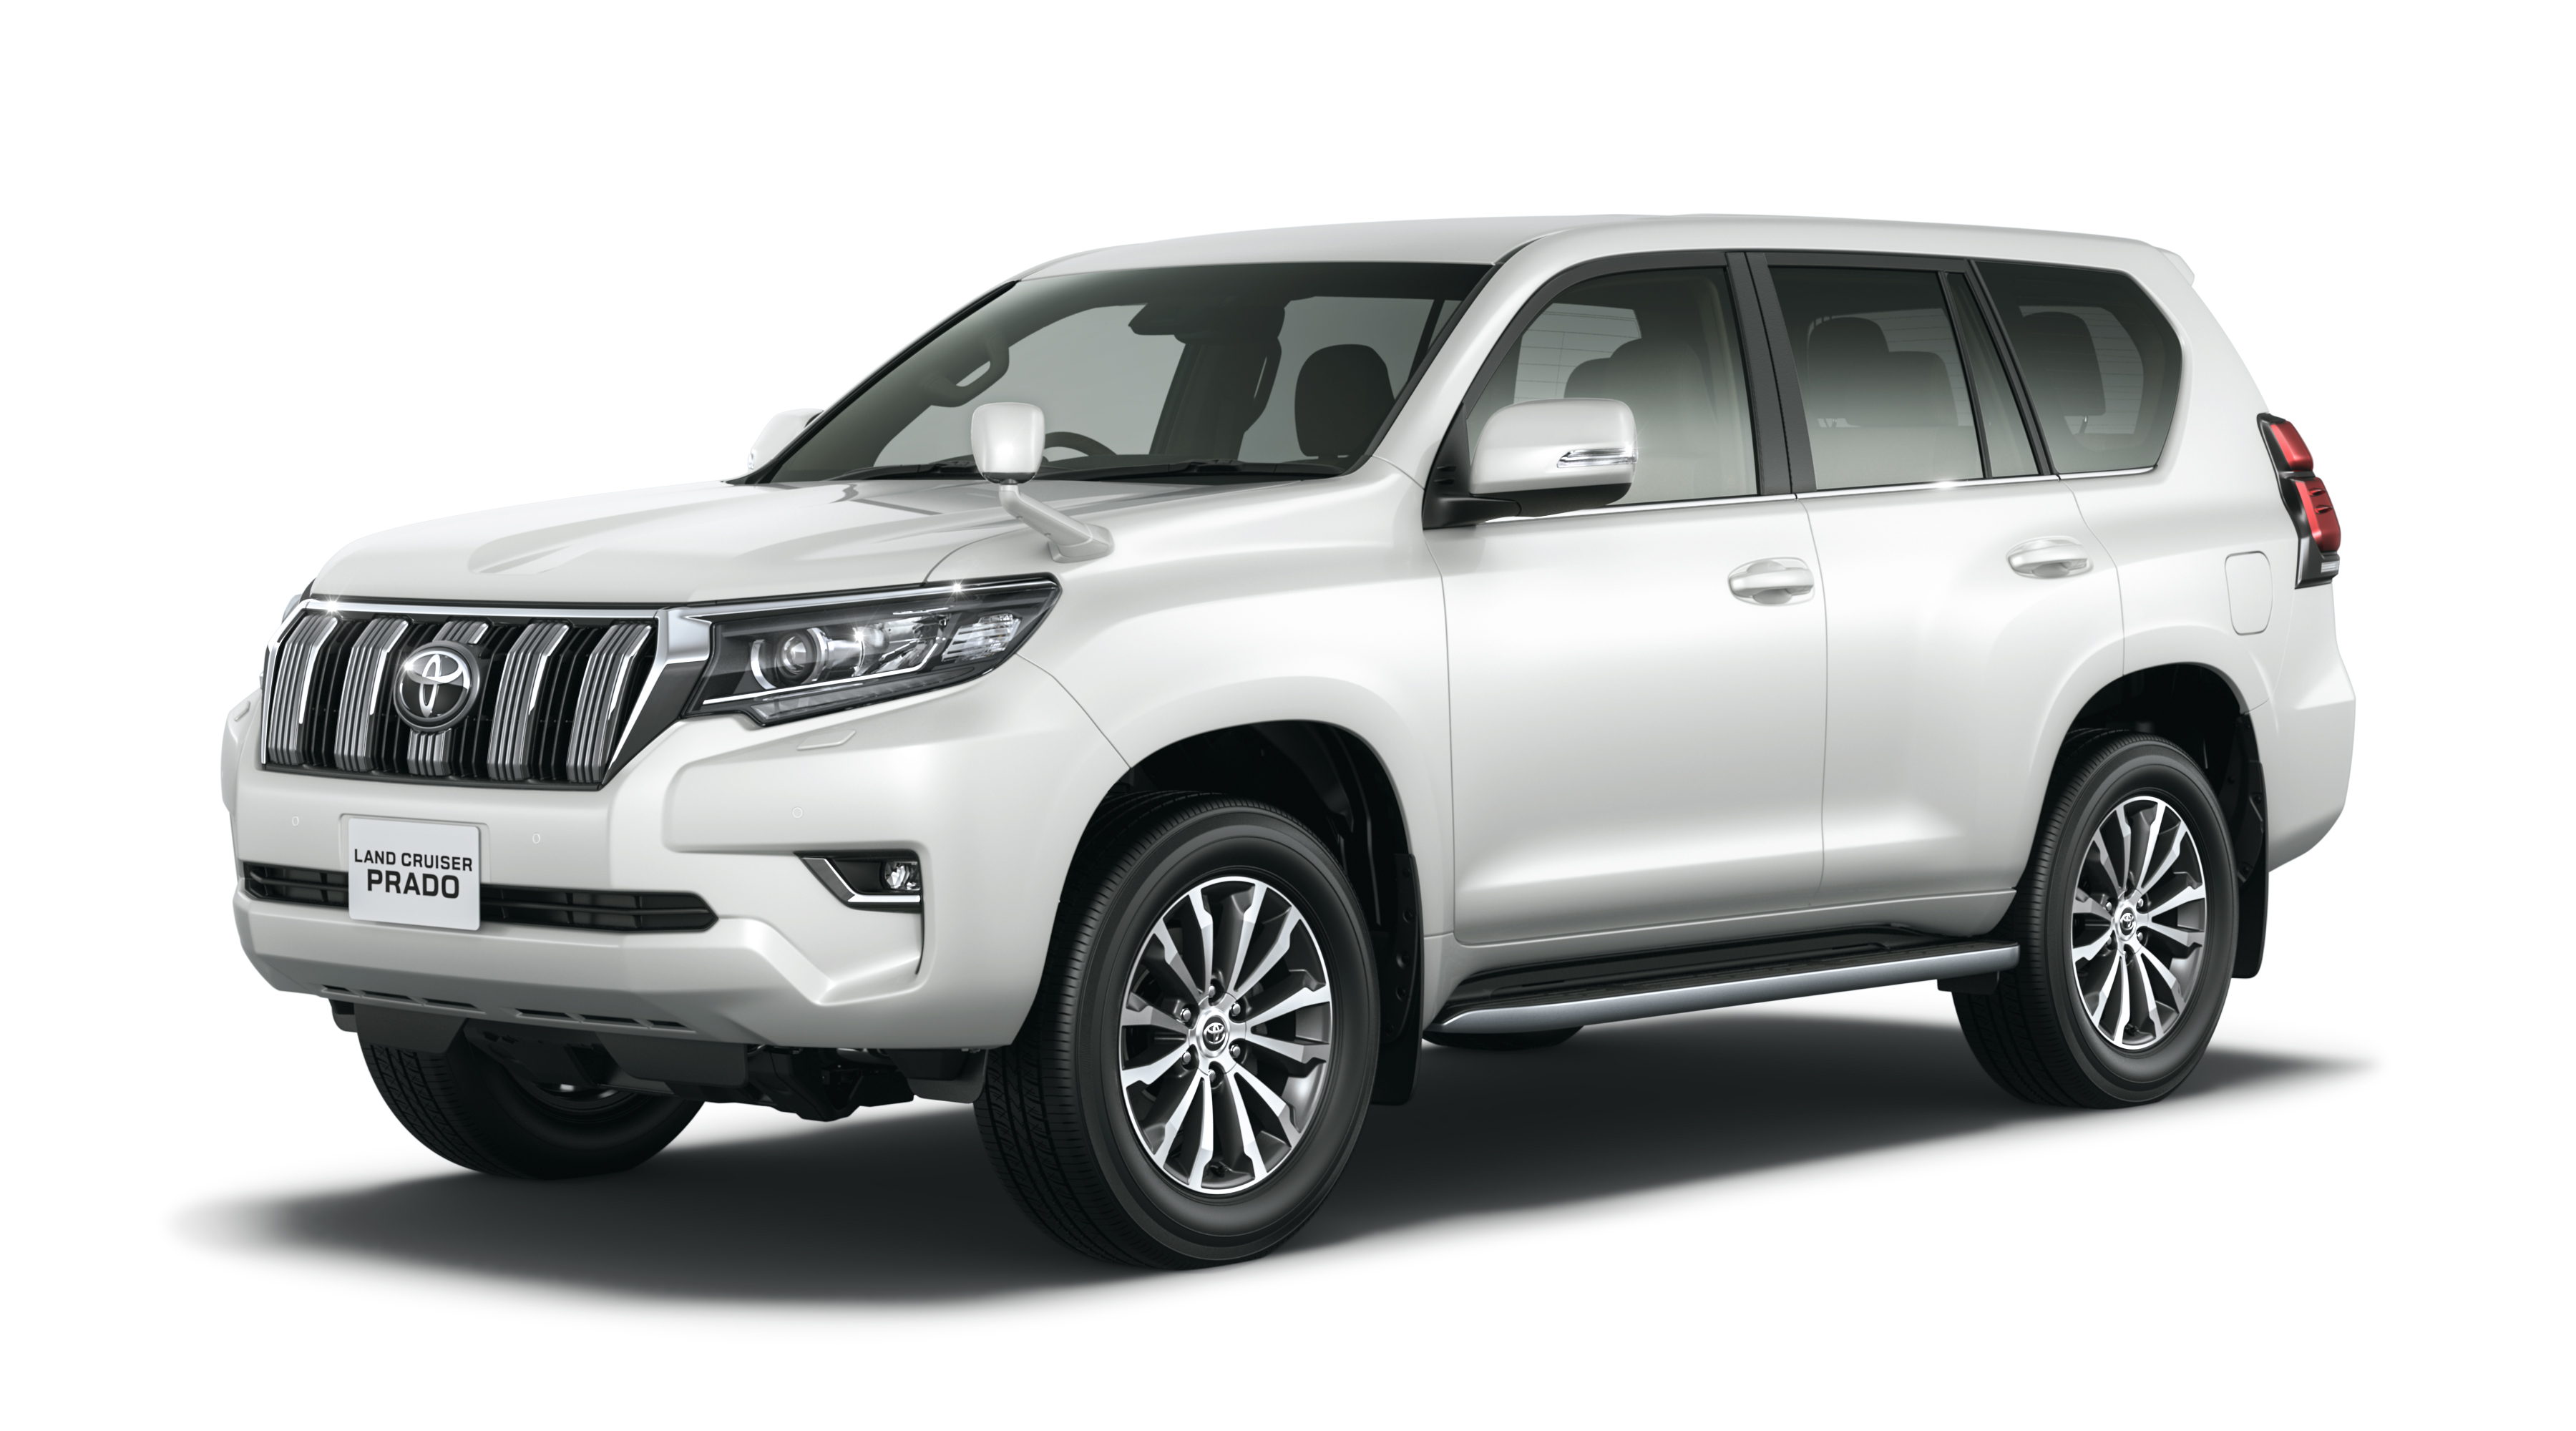 Toyota Land Cruiser Prado 150 hd model